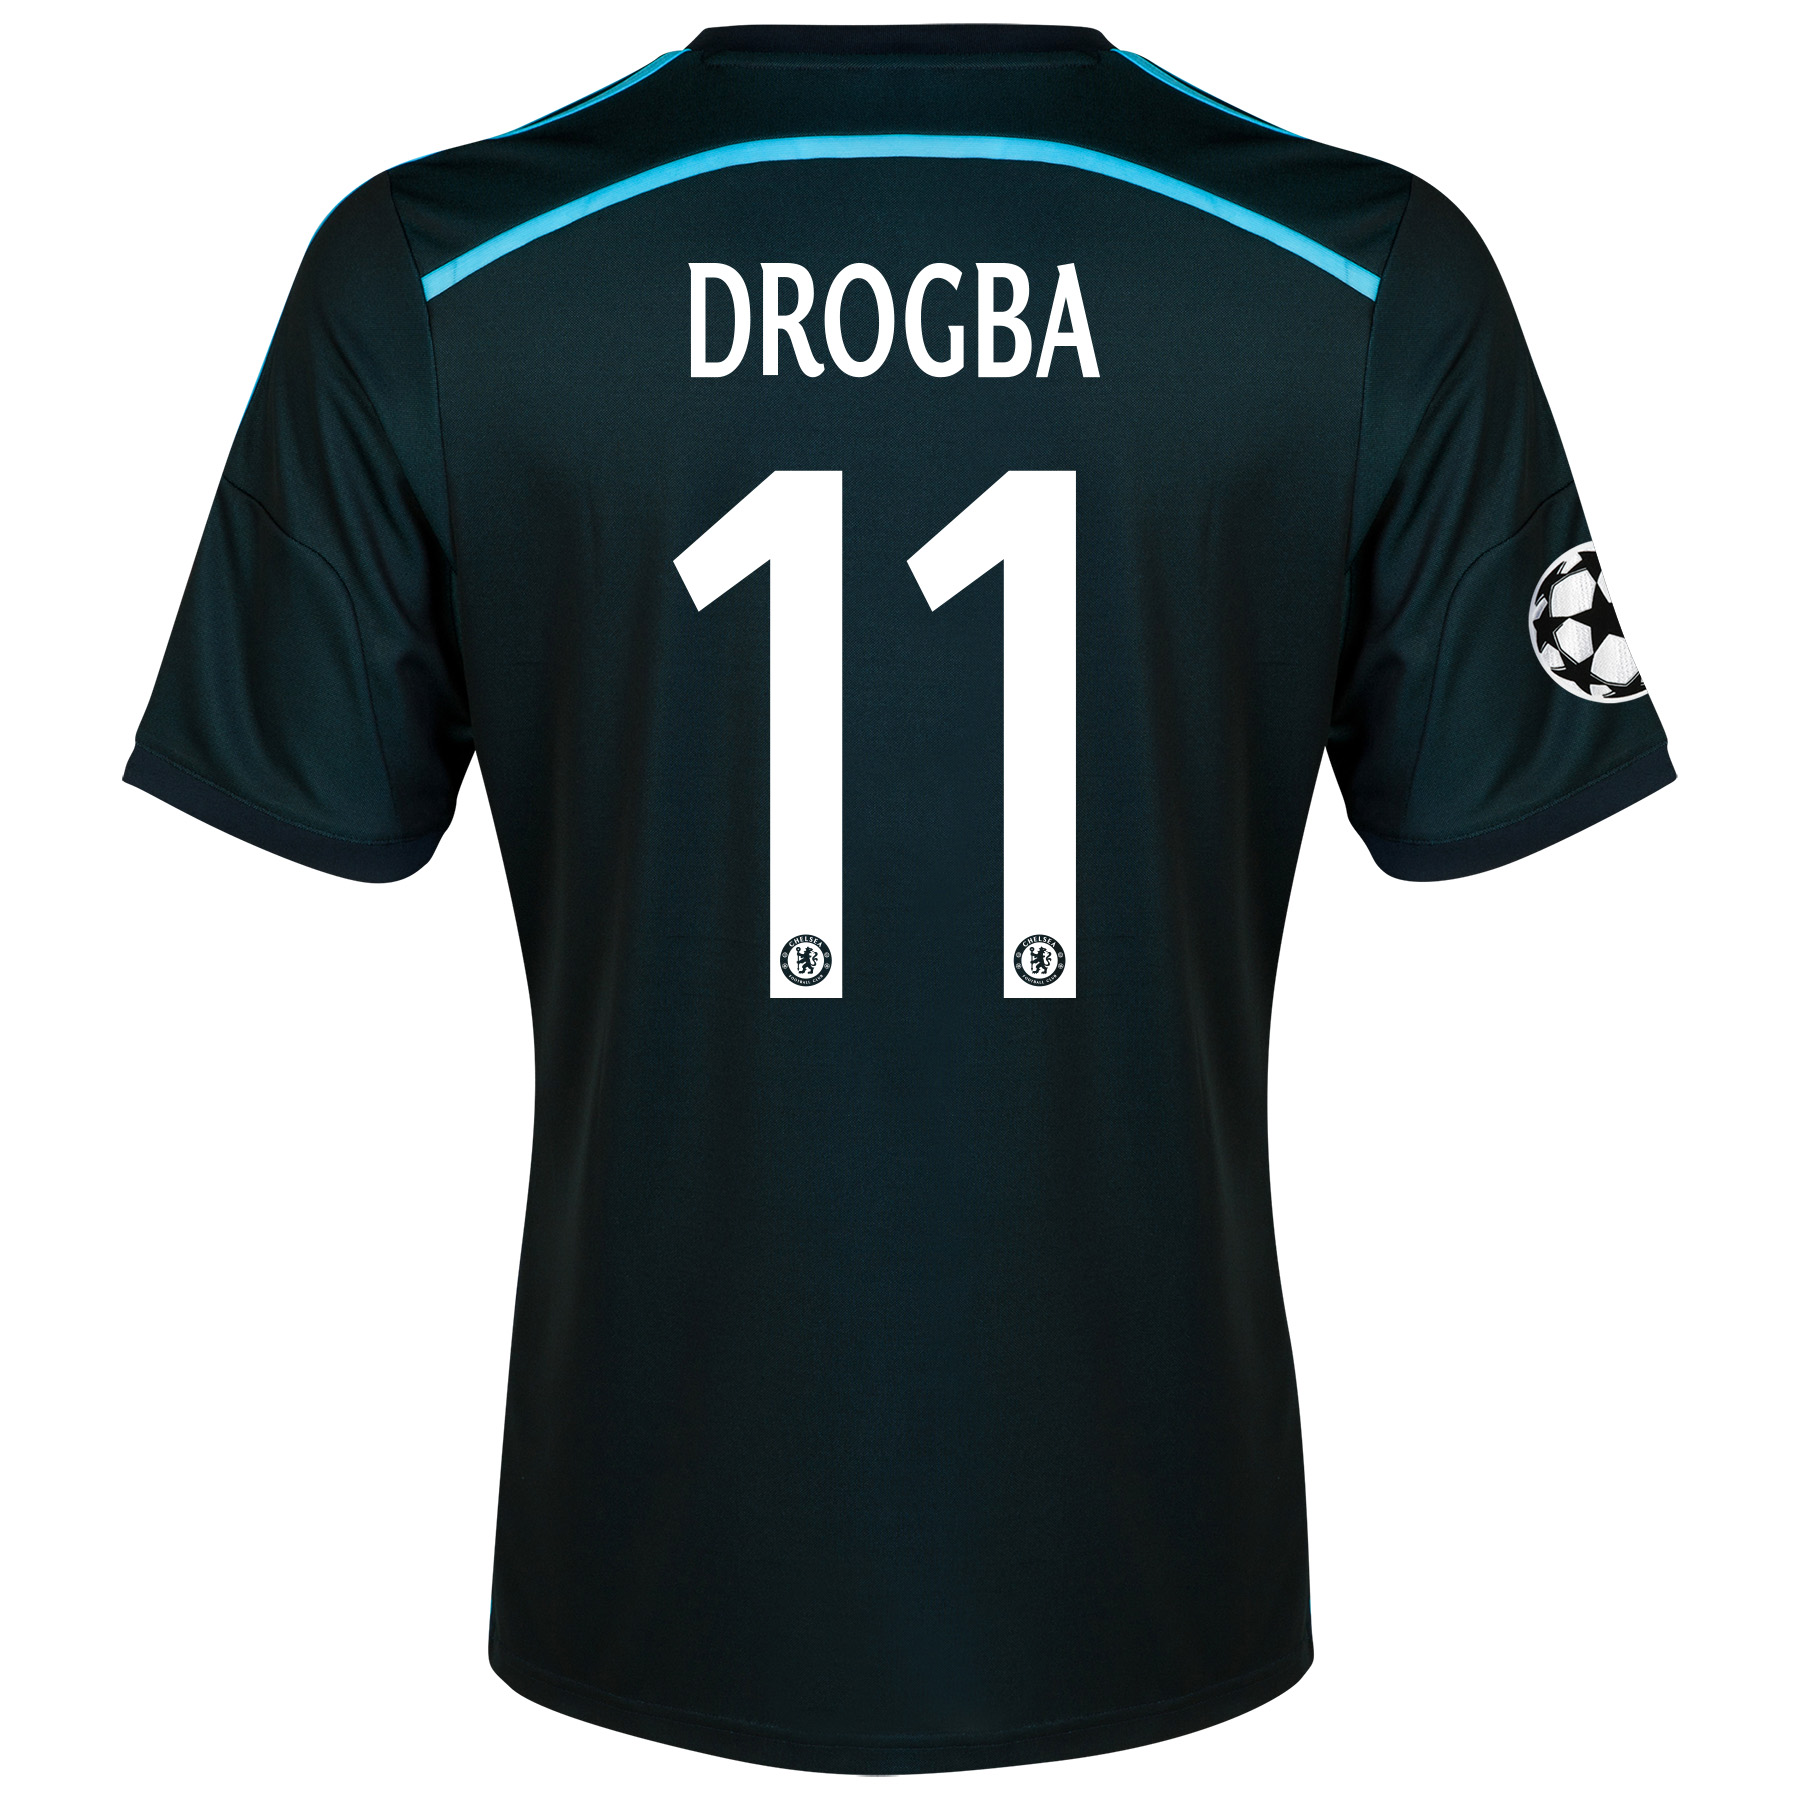 Chelsea UEFA Champions League Third Shirt 2014/15 with Drogba 11 printing